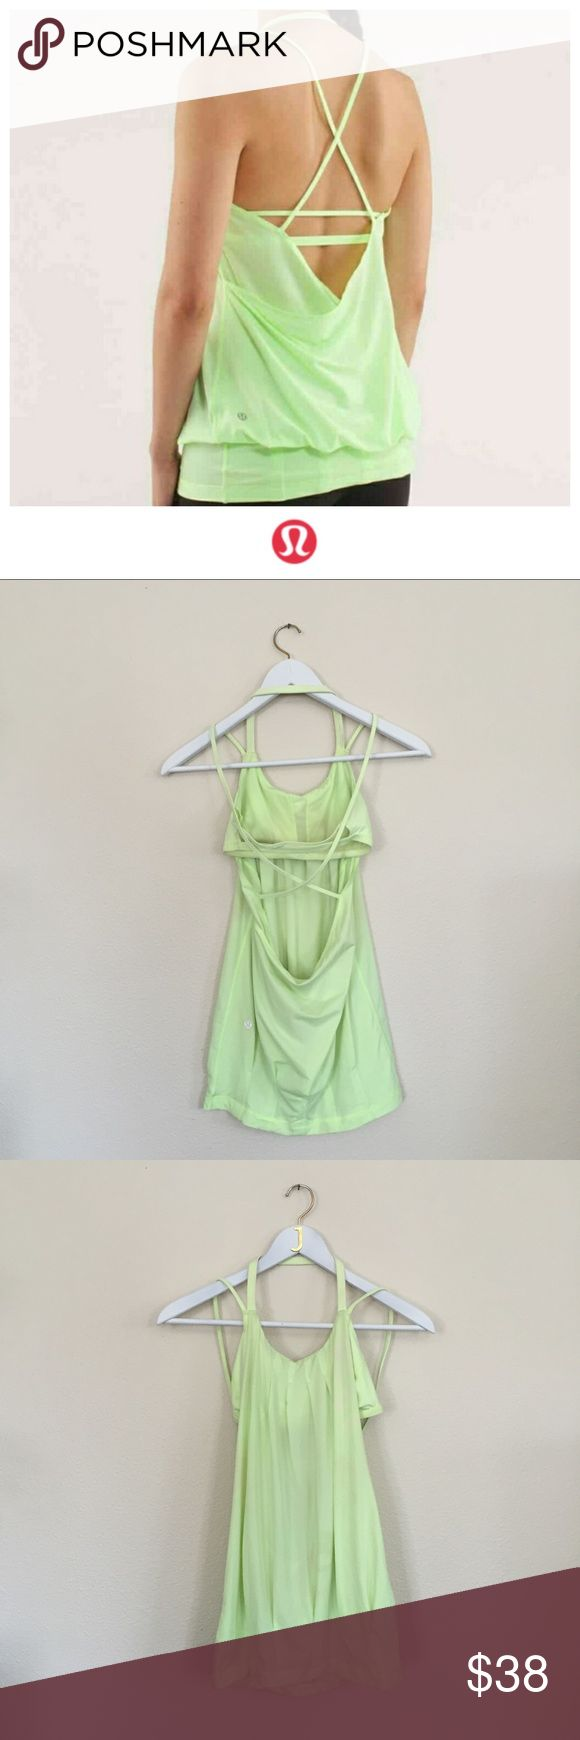 Lululemon Flow and Go Tank Used condition Lululemon Flow and Go tank. Plenty of life left and so cute on! See photos for condition (price reflects this). Hope you enjoy! 😘 (First photo is a stock photo to show fit -- such a good and slimming look on!) lululemon athletica Tops Tank Tops